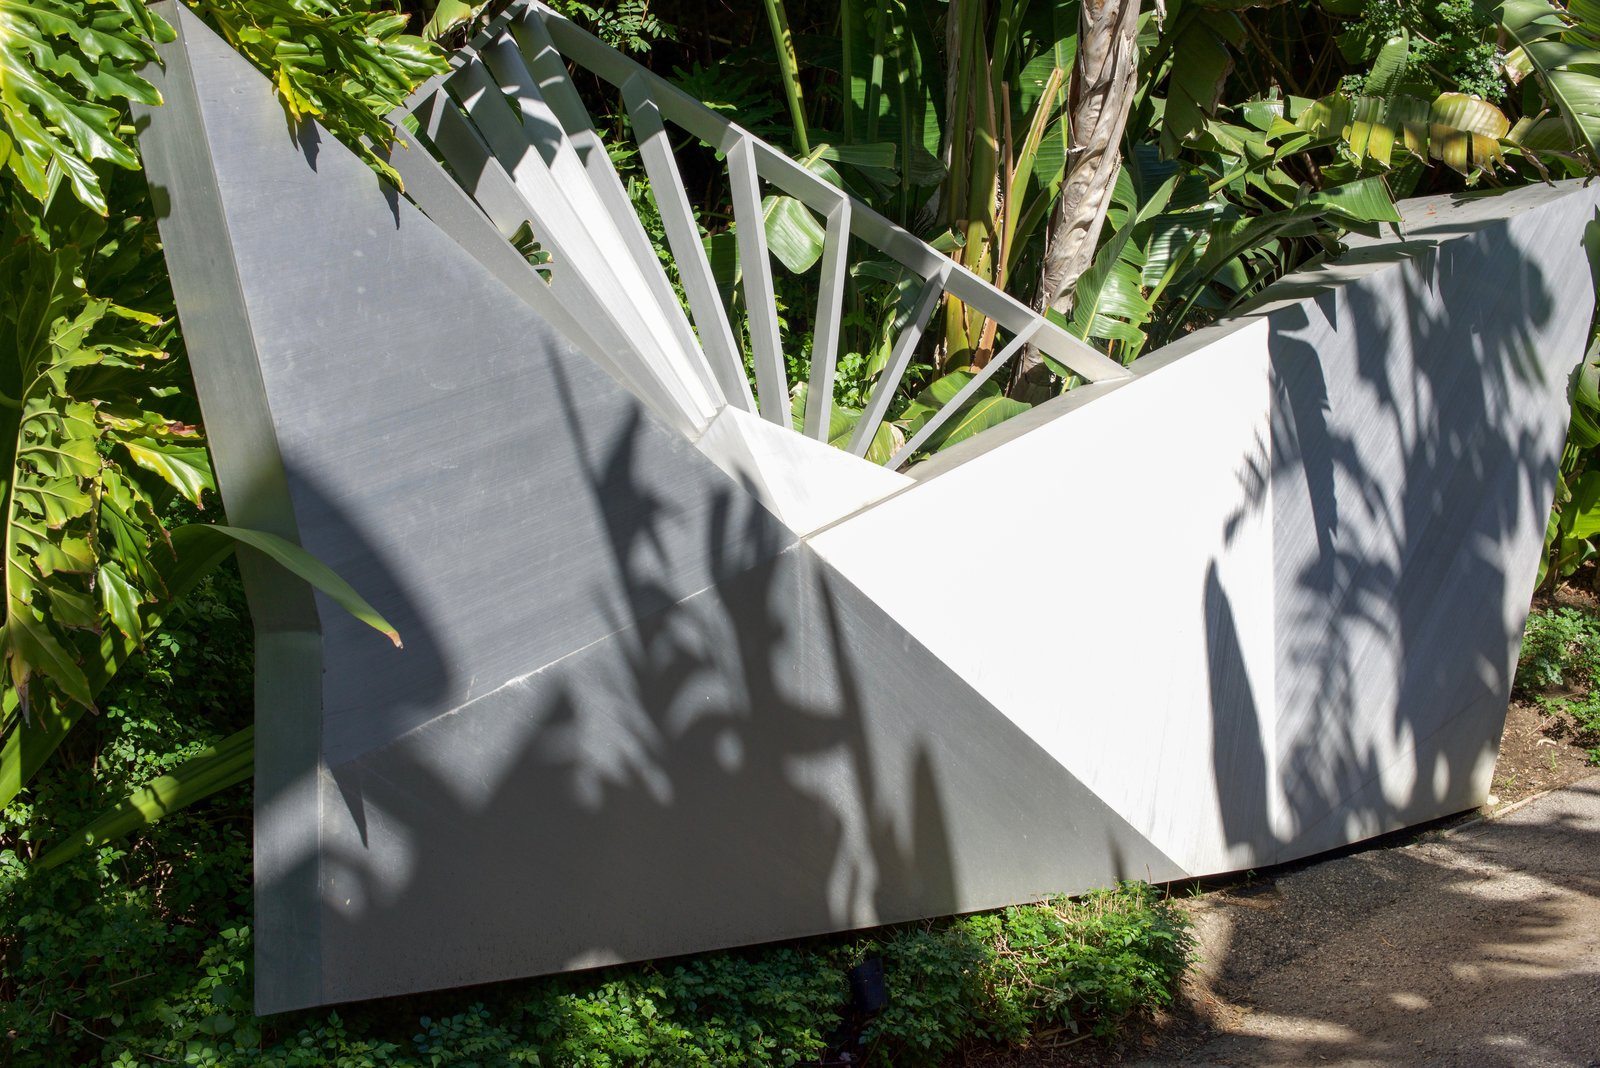 The long stroll down the driveway is lined with angular pieces of metalwork, like the one shown here.  Behind the Scenes at John Lautner's Sheats-Goldstein Residence